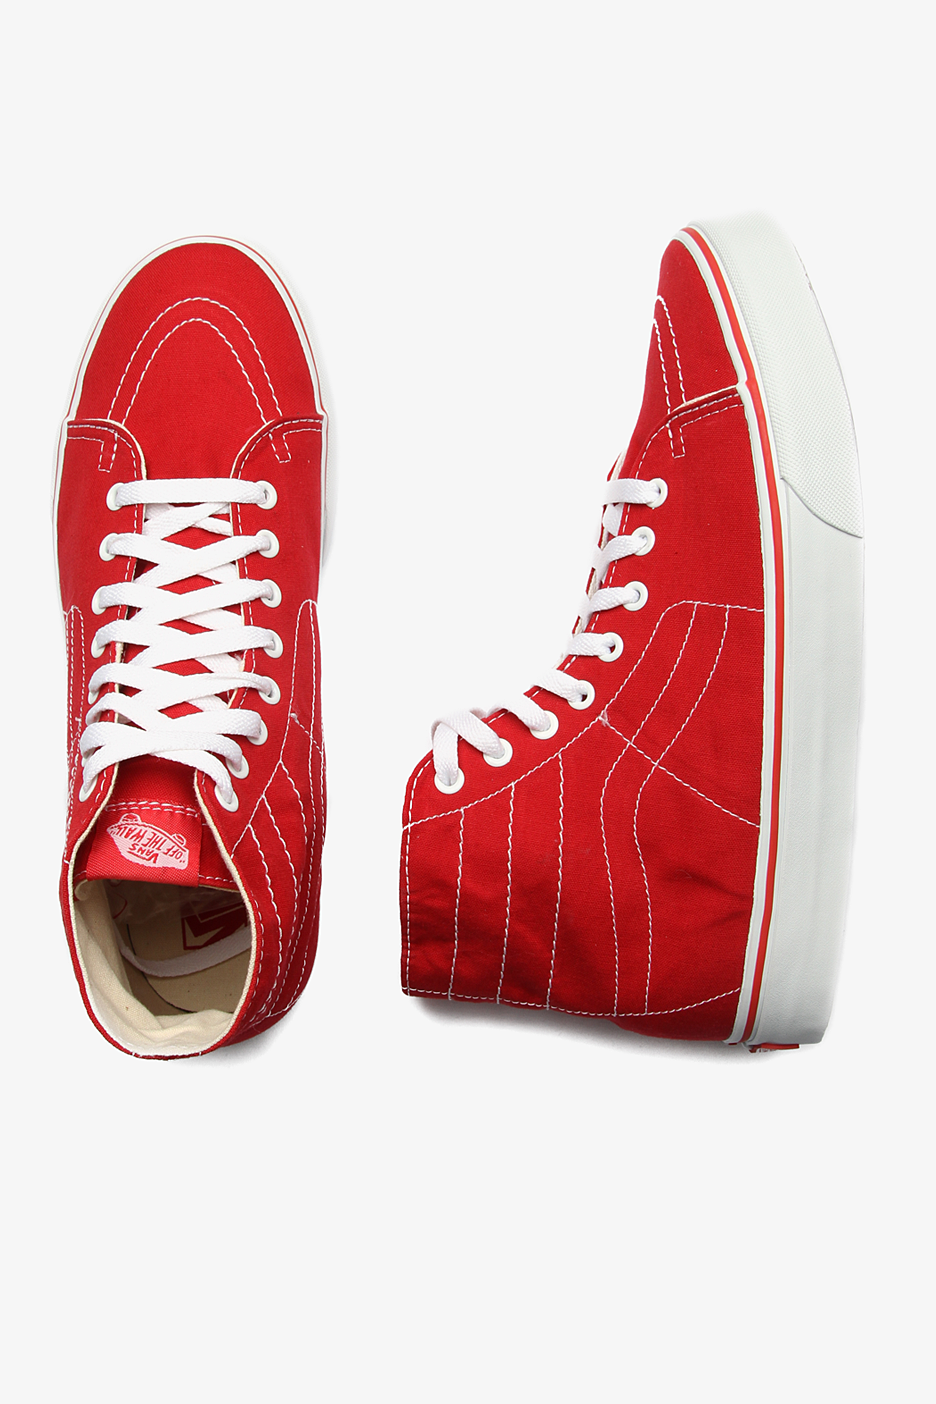 Vans - SK8 Hi Deconstruct Red White - Shoes - Impericon.com Worldwide 8fa94ccf0